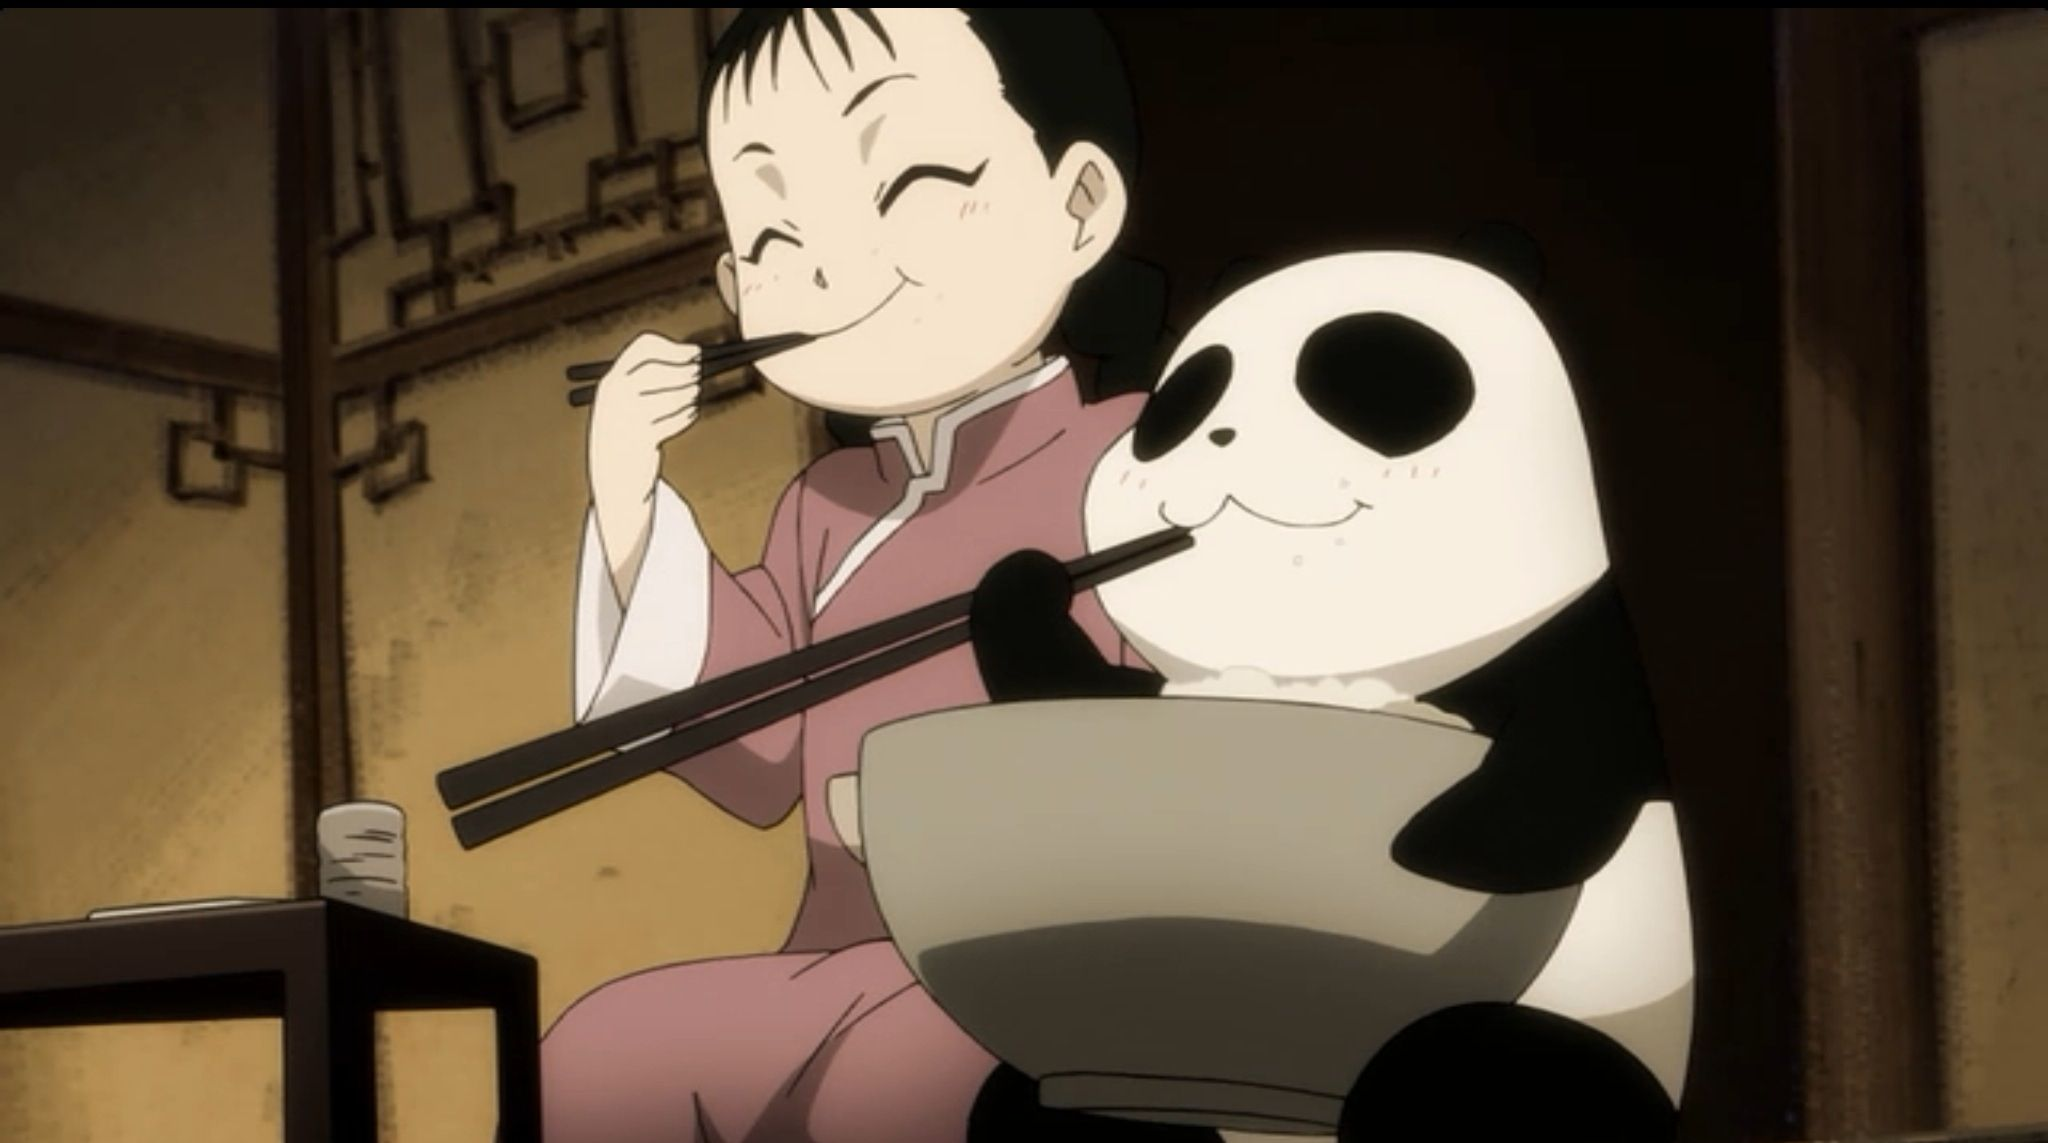 Fullmetal Alchemist scene featuring May Chang and Xiao Mei, doing basically what the gremlin did.